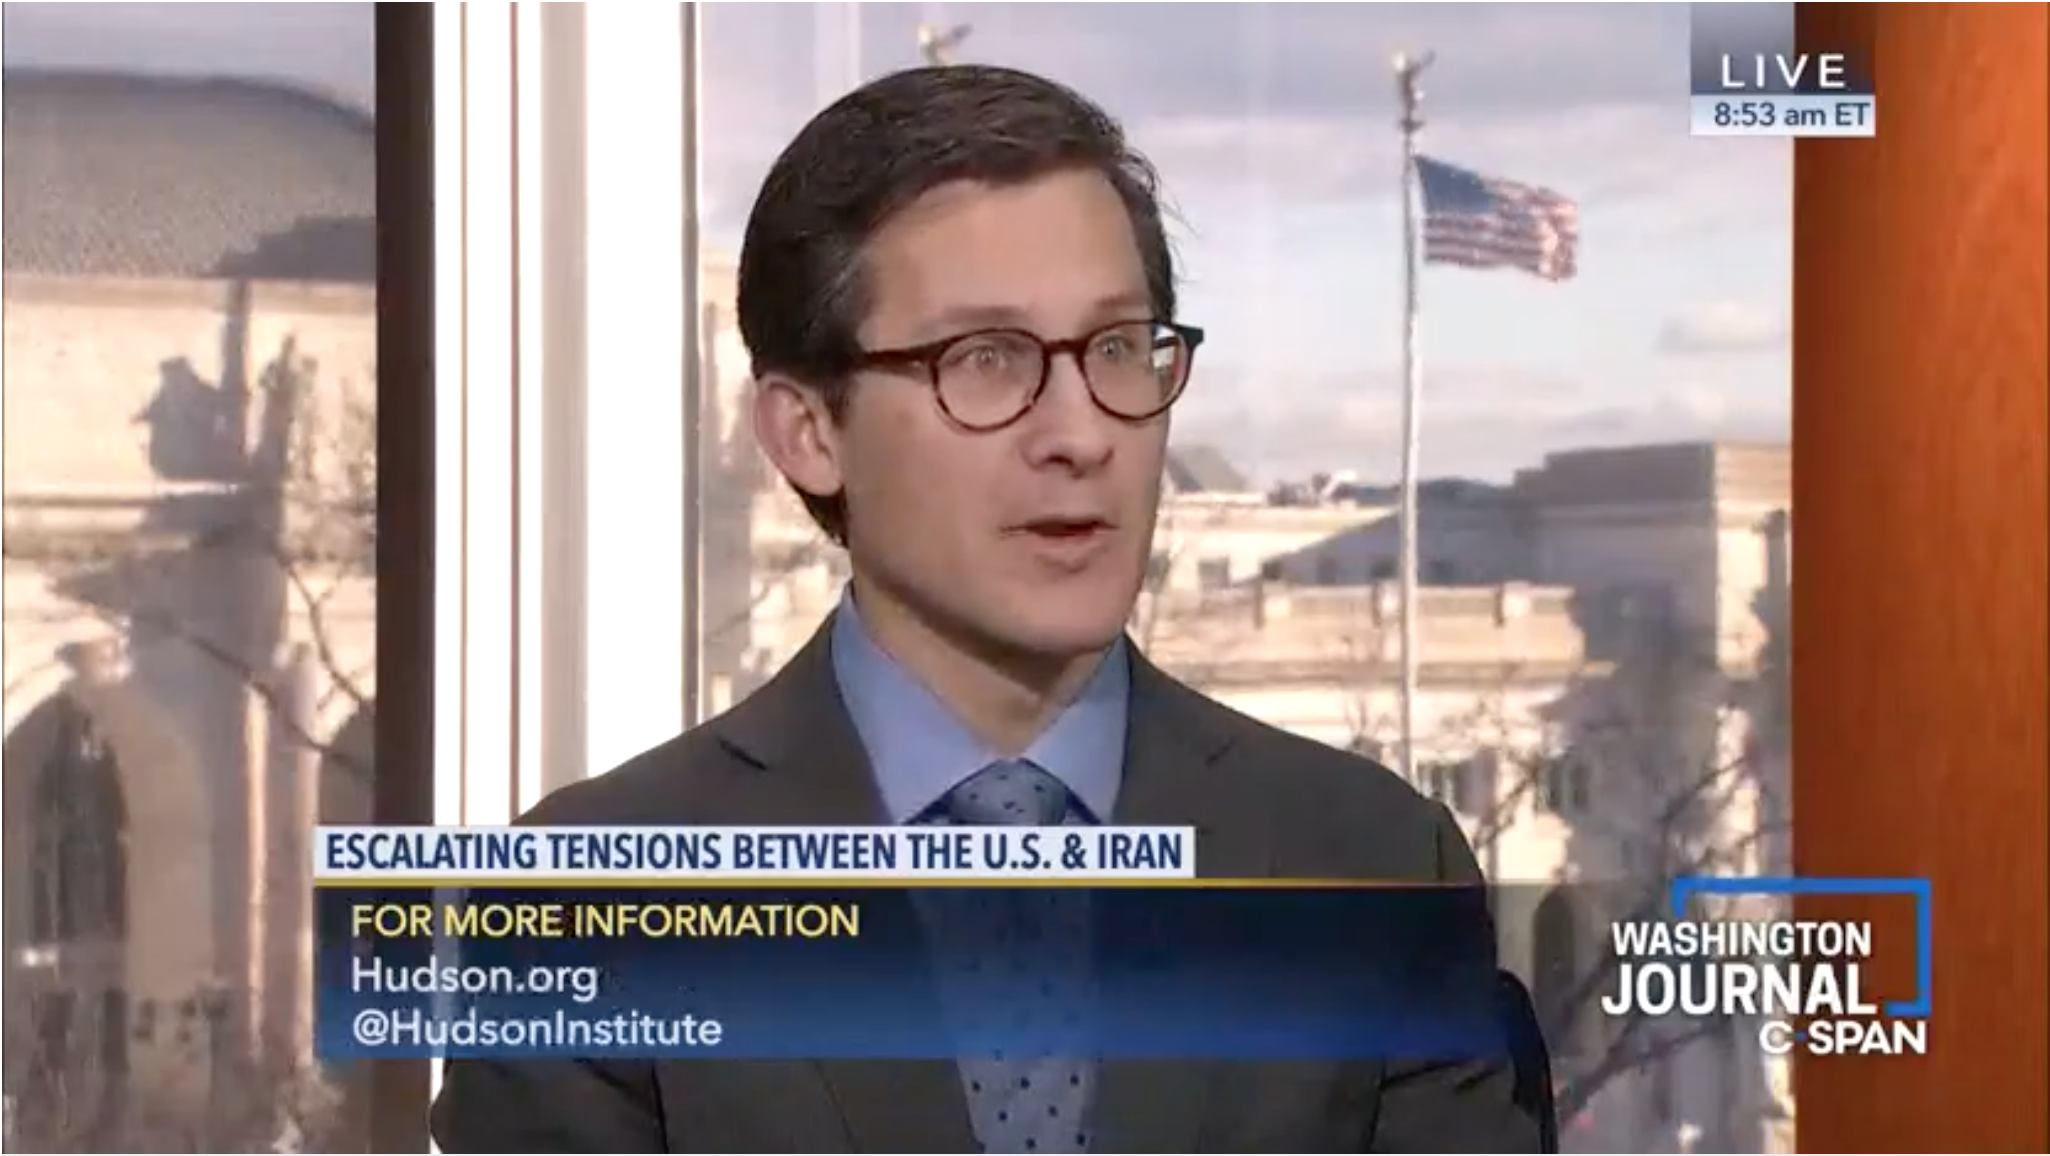 Blaise Misztal discusses tensions between the U.S. and Iran, January 5, 2020.